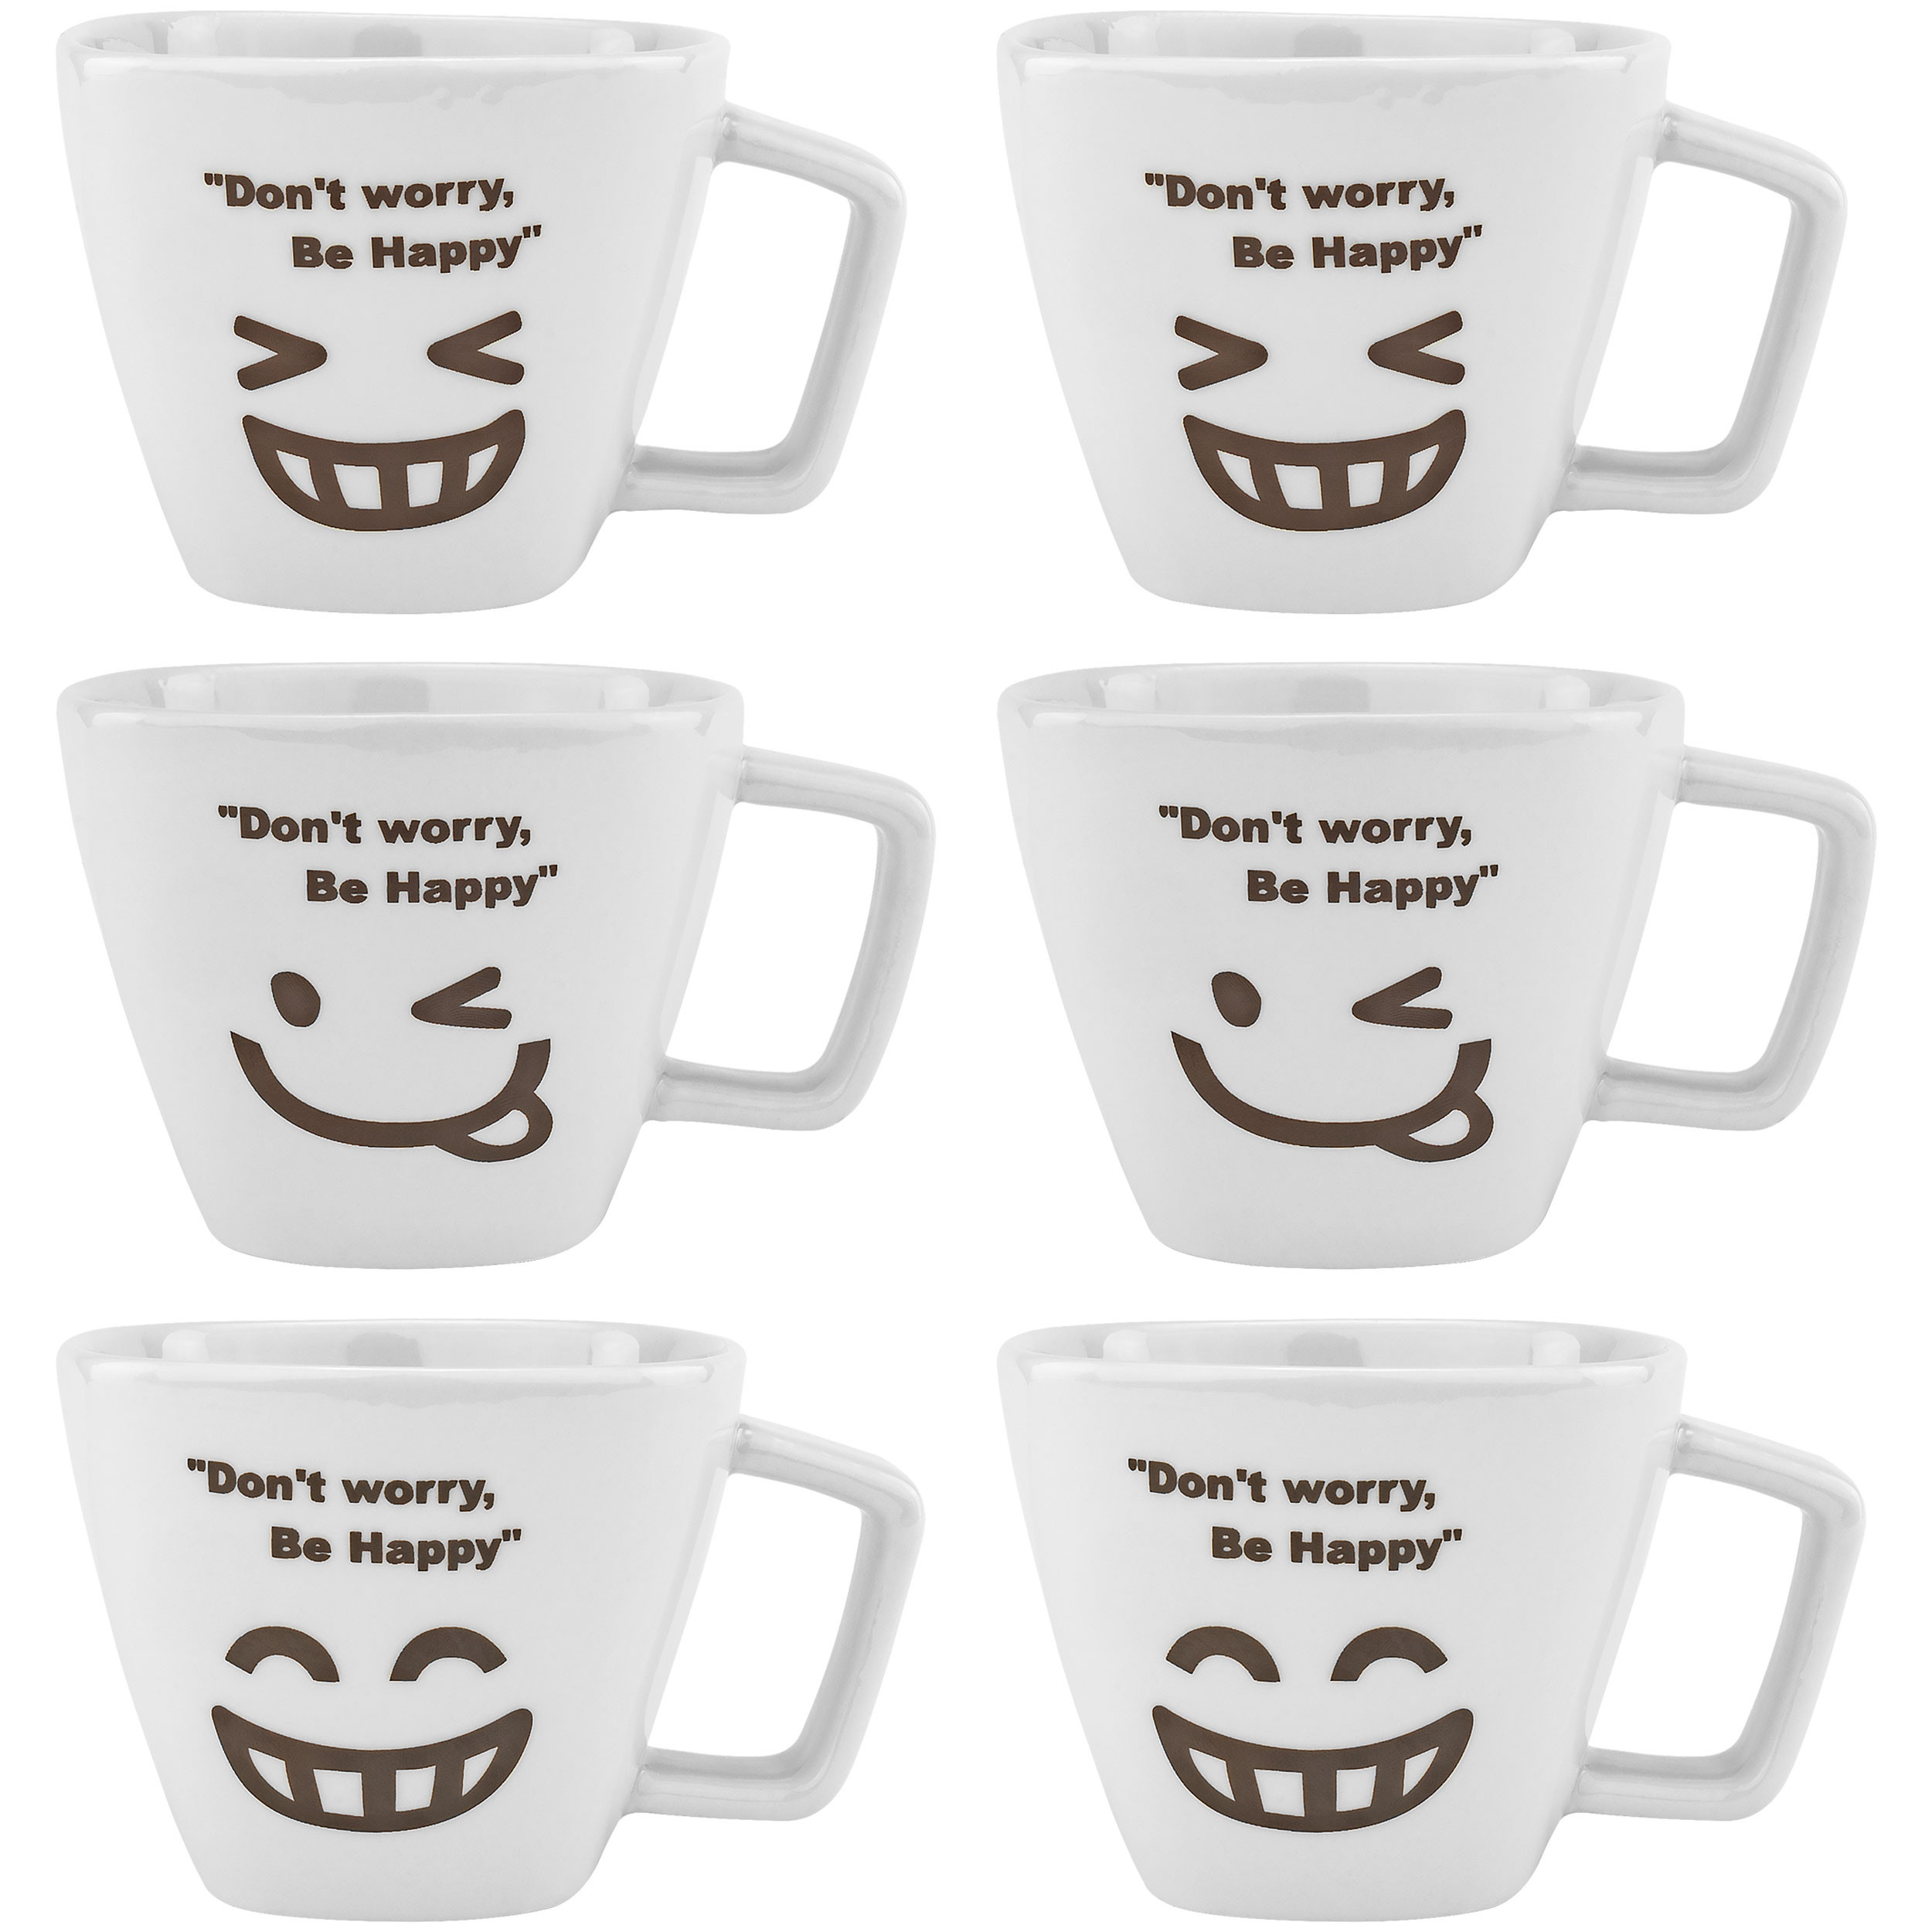 Don't Worry, Be Happy Man Ceramic Tea Cup Face, Set of 6